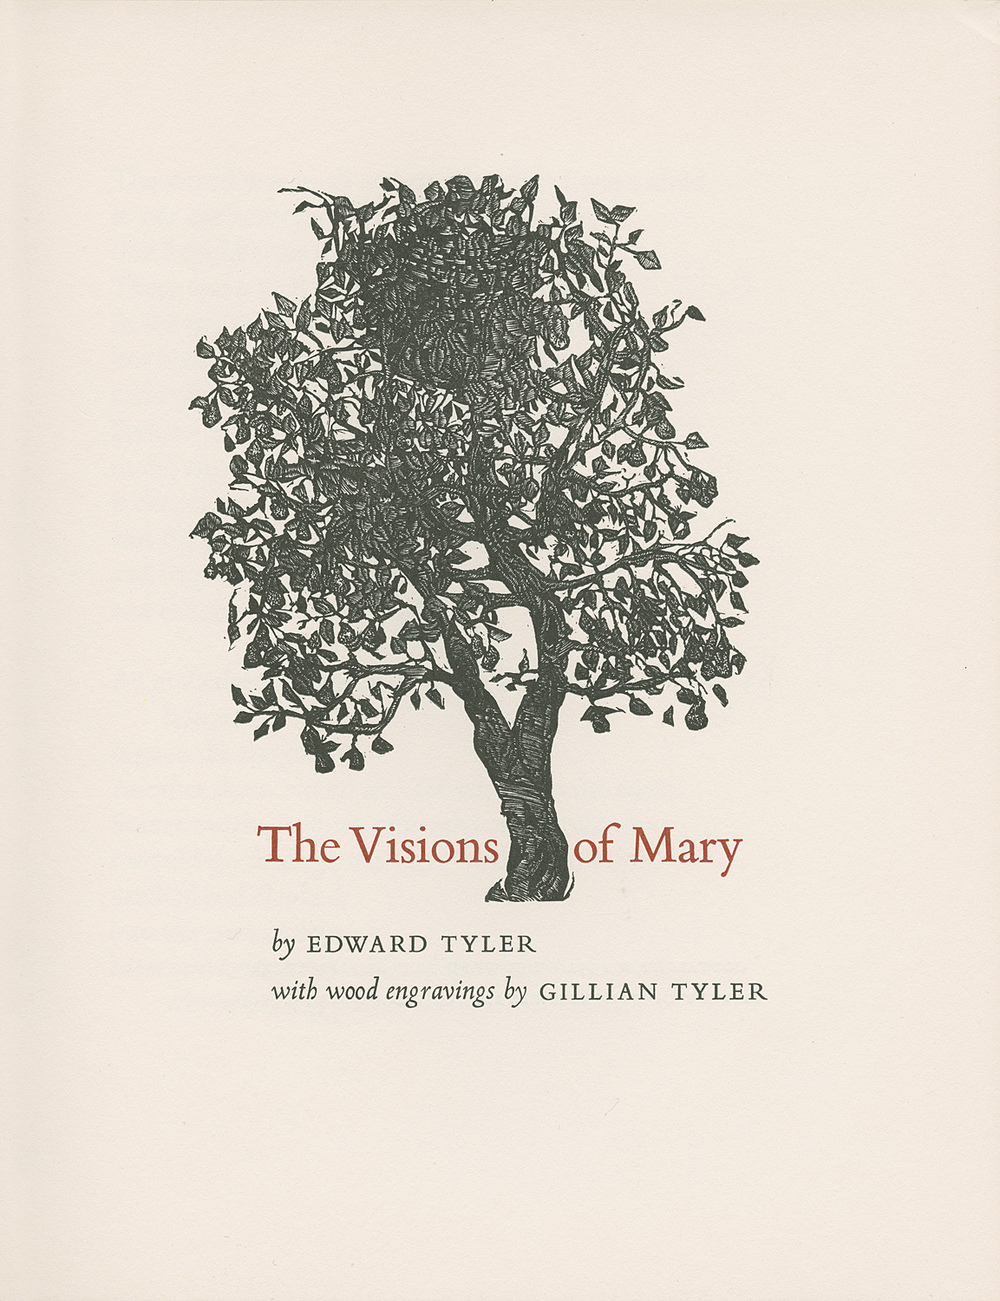 Stinehour_Press_Visions of Mary_title_page.jpg